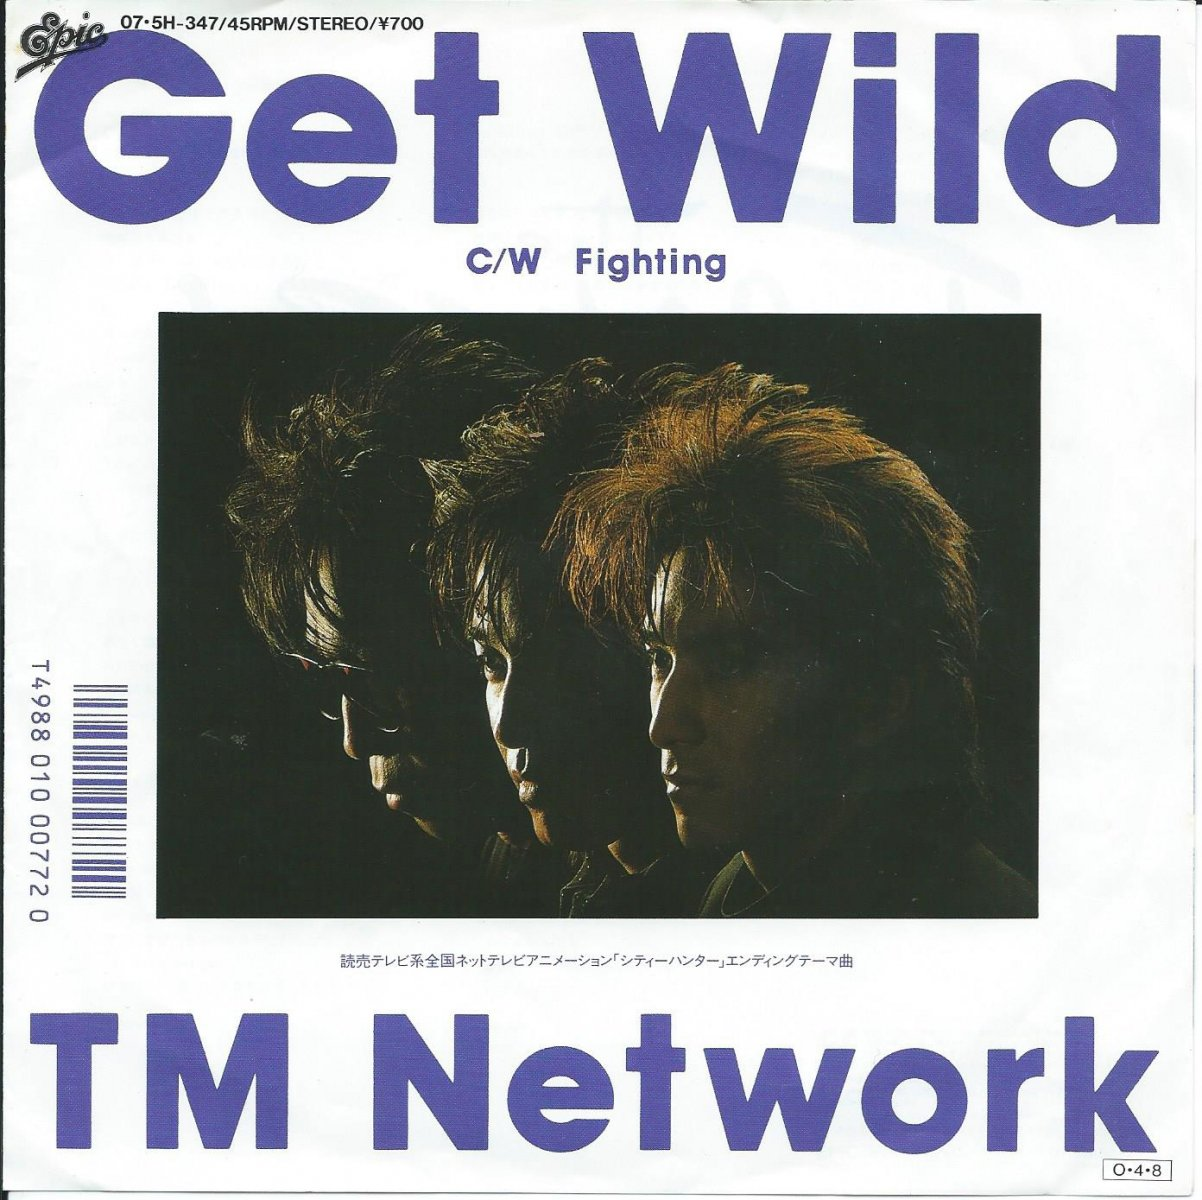 TM NETWORK / GET WILD / FIGHTING (7